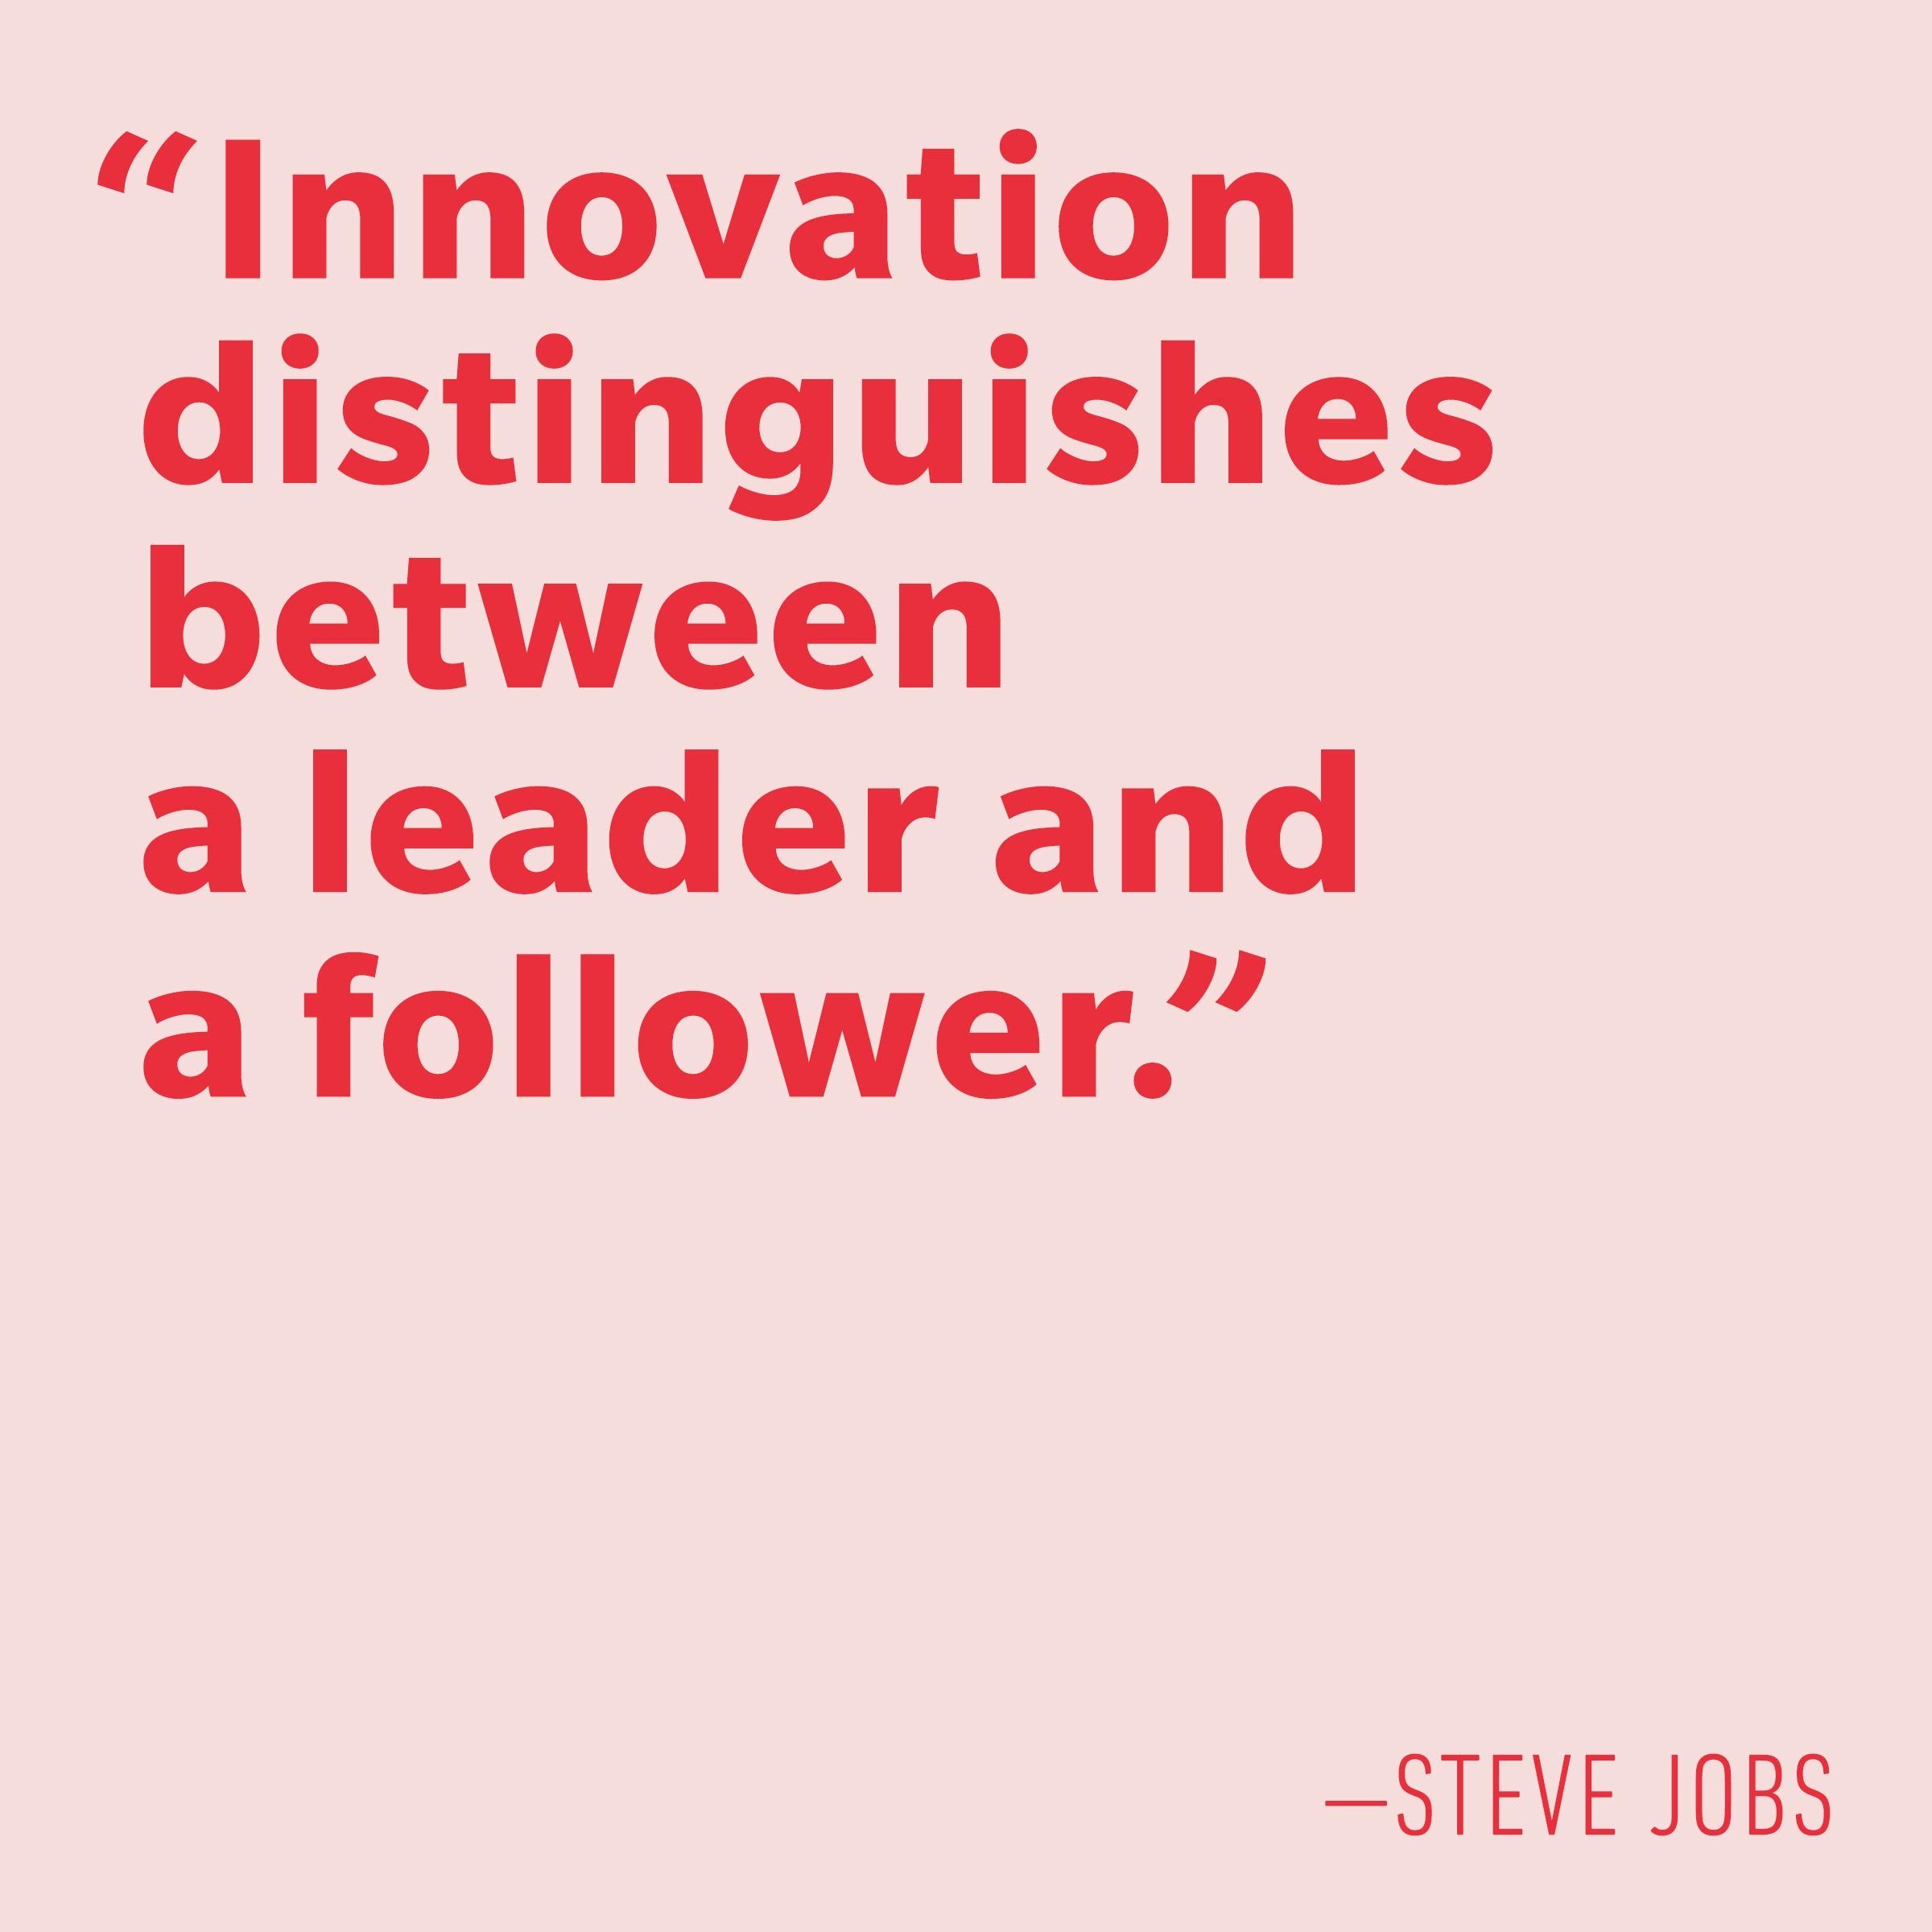 Motivational quotes - Steve Jobs